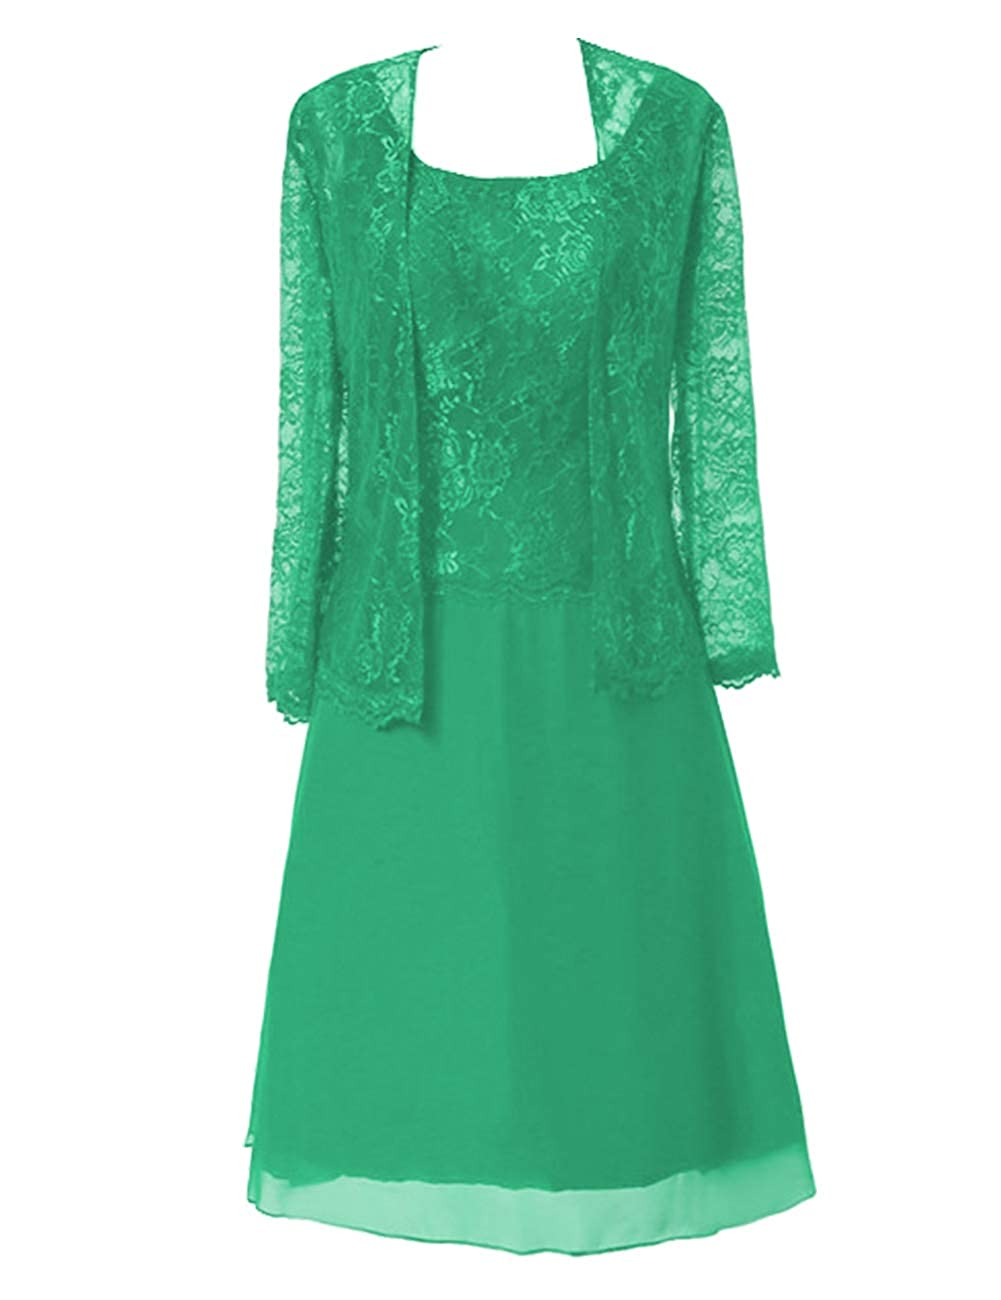 Green Mother of The Bride Dresses Knee Length for Wedding Plus Size Mother Dresses for Women Special Occasion with Jacket